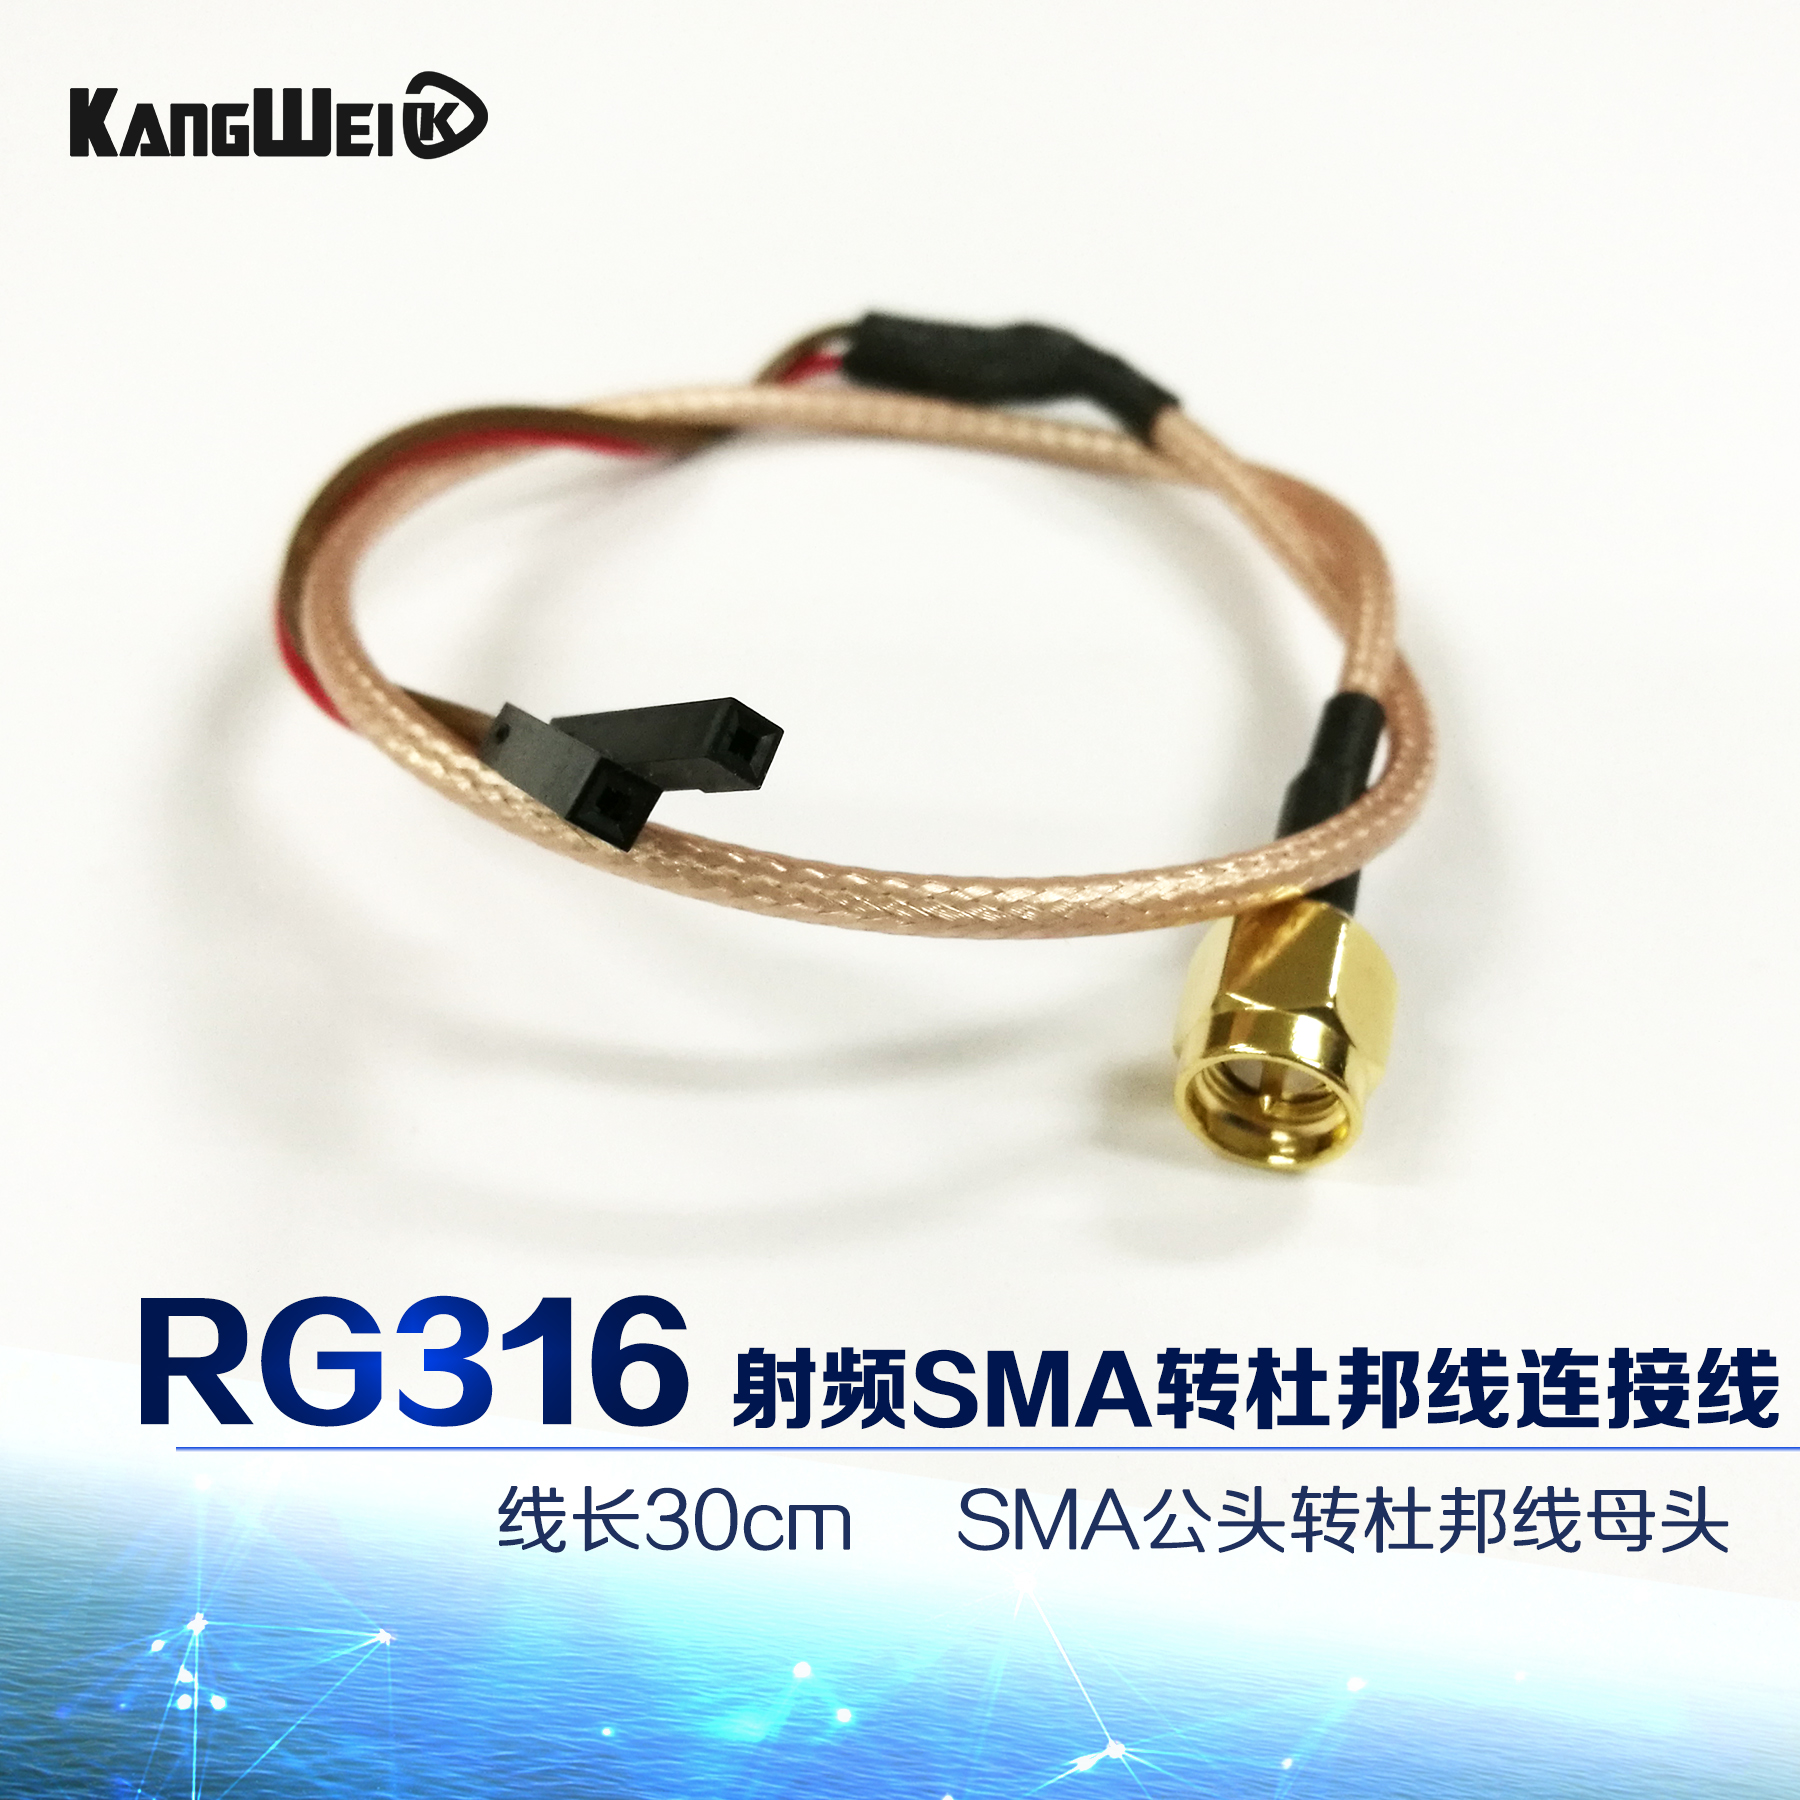 RF SMA Connector SMA, Inner Pin to DuPont Line, Female Head RG316, Line Length 30cm 1pcs lot md6f line md6 female mouse and keyboard to 4p terminal line 50cm